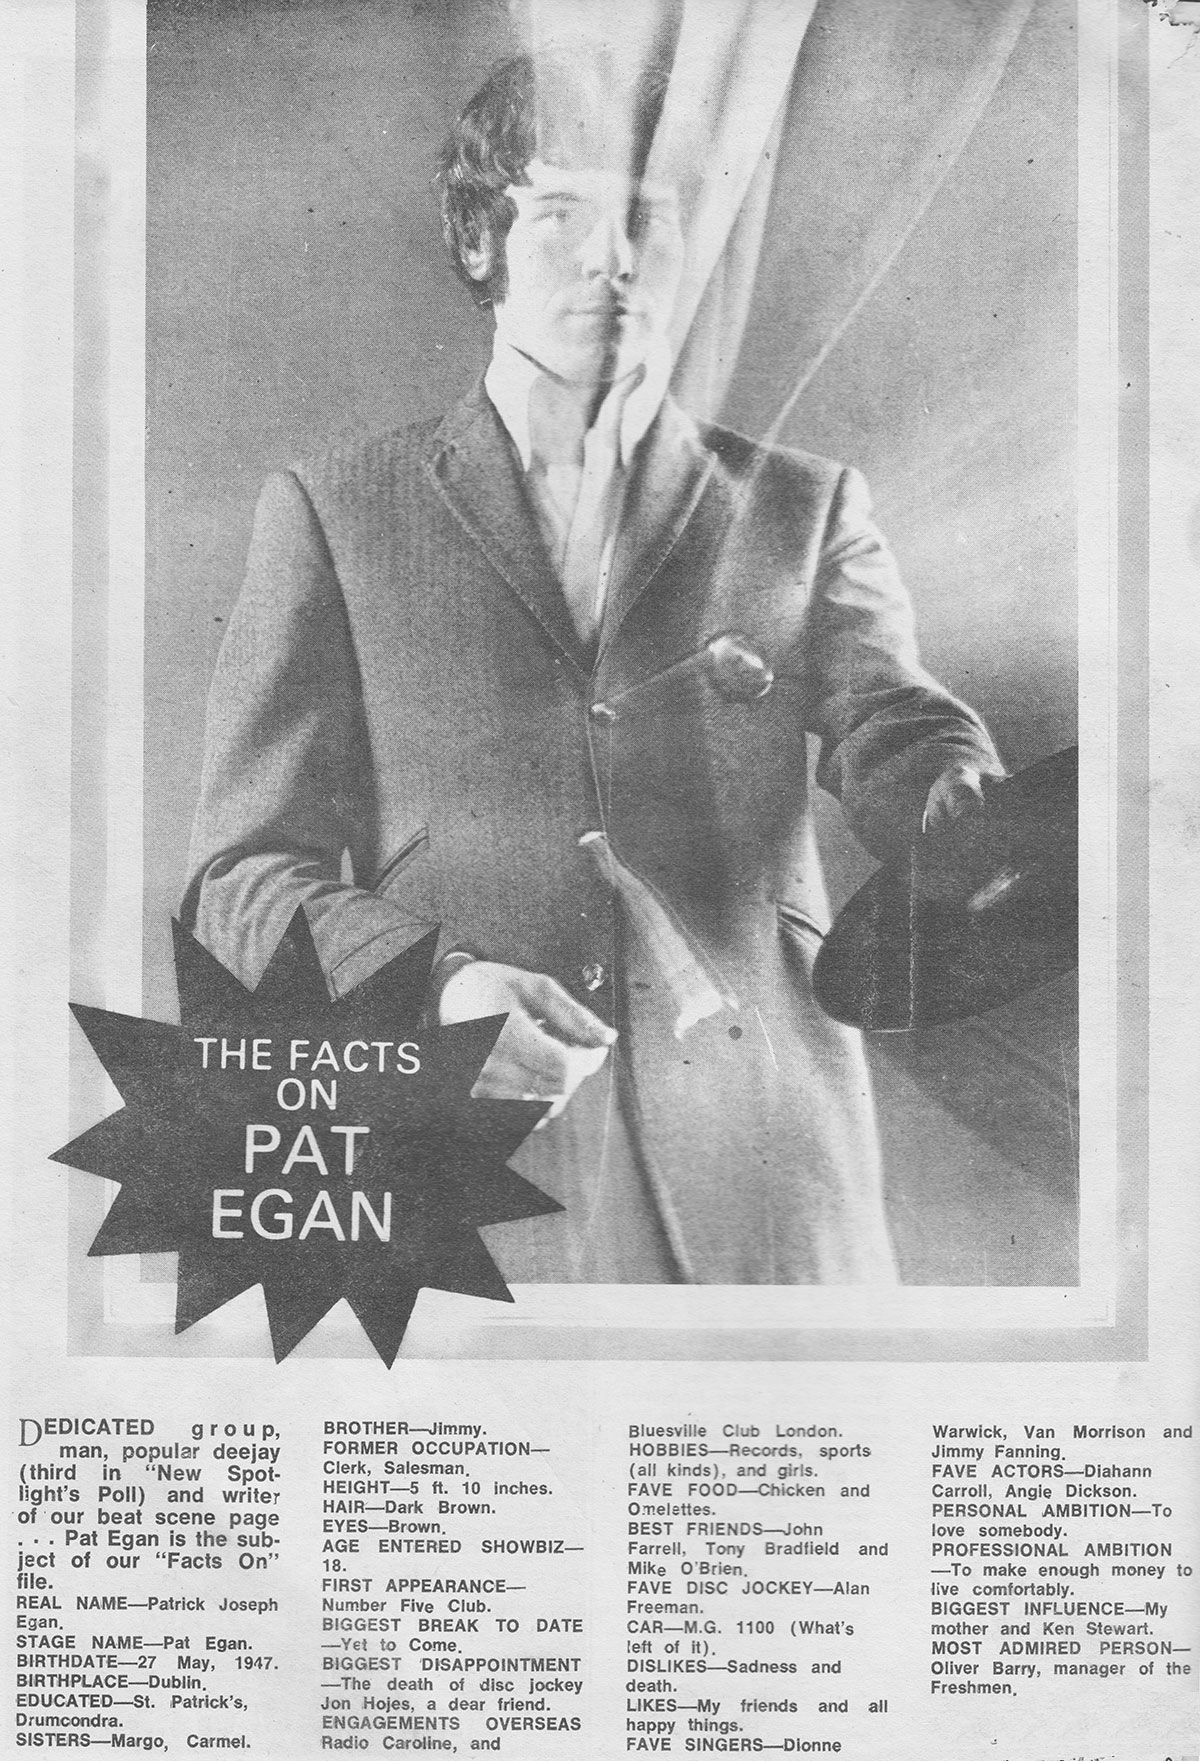 facts-on-pat-egan-1969